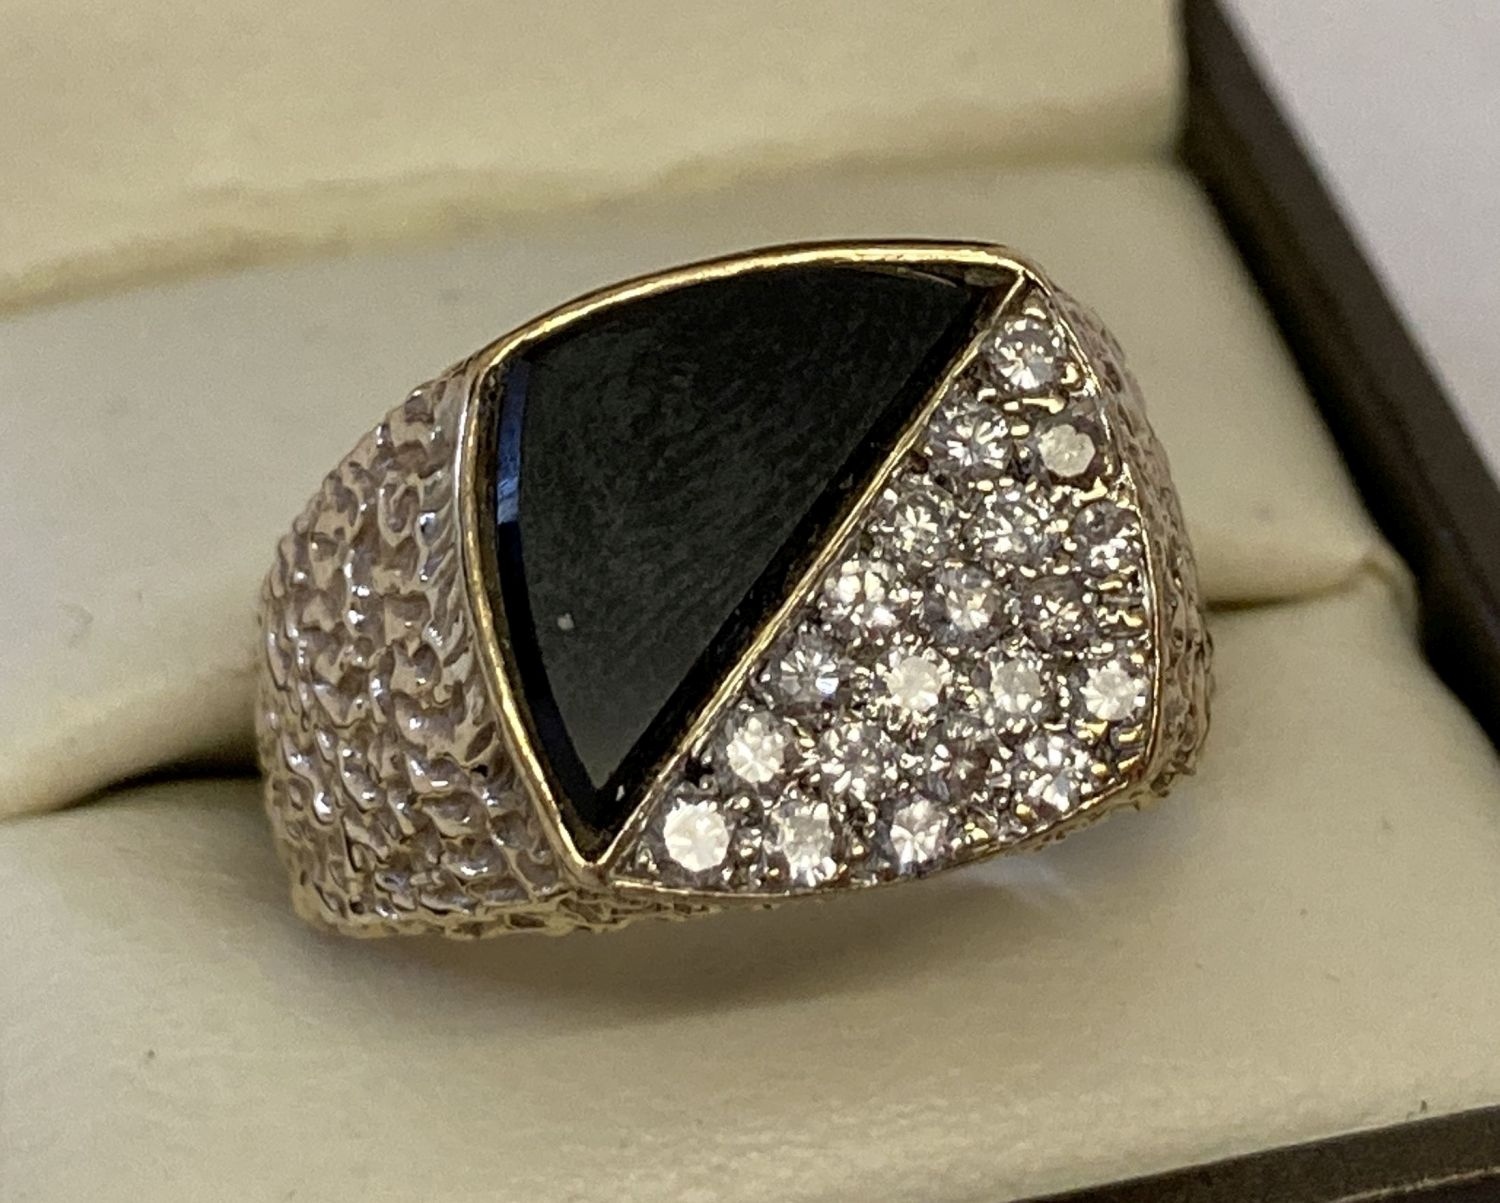 A vintage yellow gold men's signet ring, set with 1ct diamonds and black onyx.